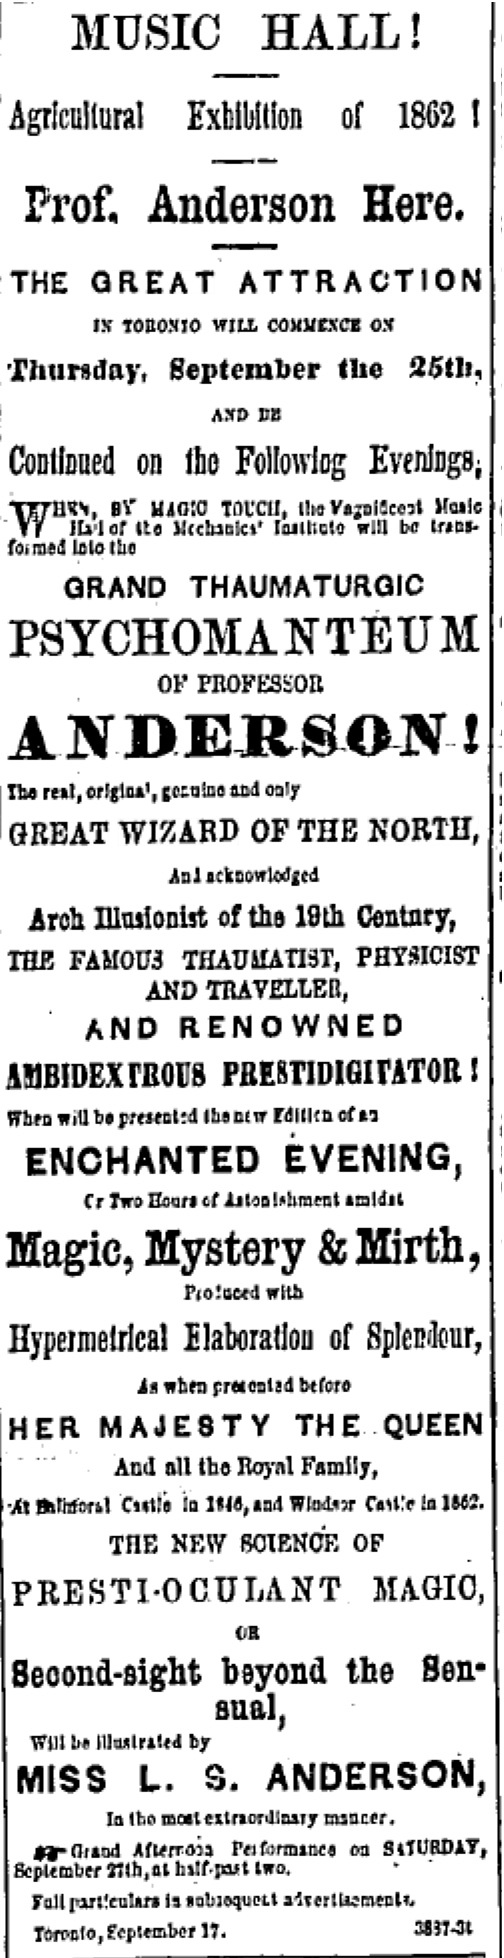 Advertisement for Professor Anderson's magic performances at the Music Hall, Mechanic's Institute in Toronto during the Agricultural Exhibition of 1862 in Toronto. From the Global and Mail, 19 September, 1862.